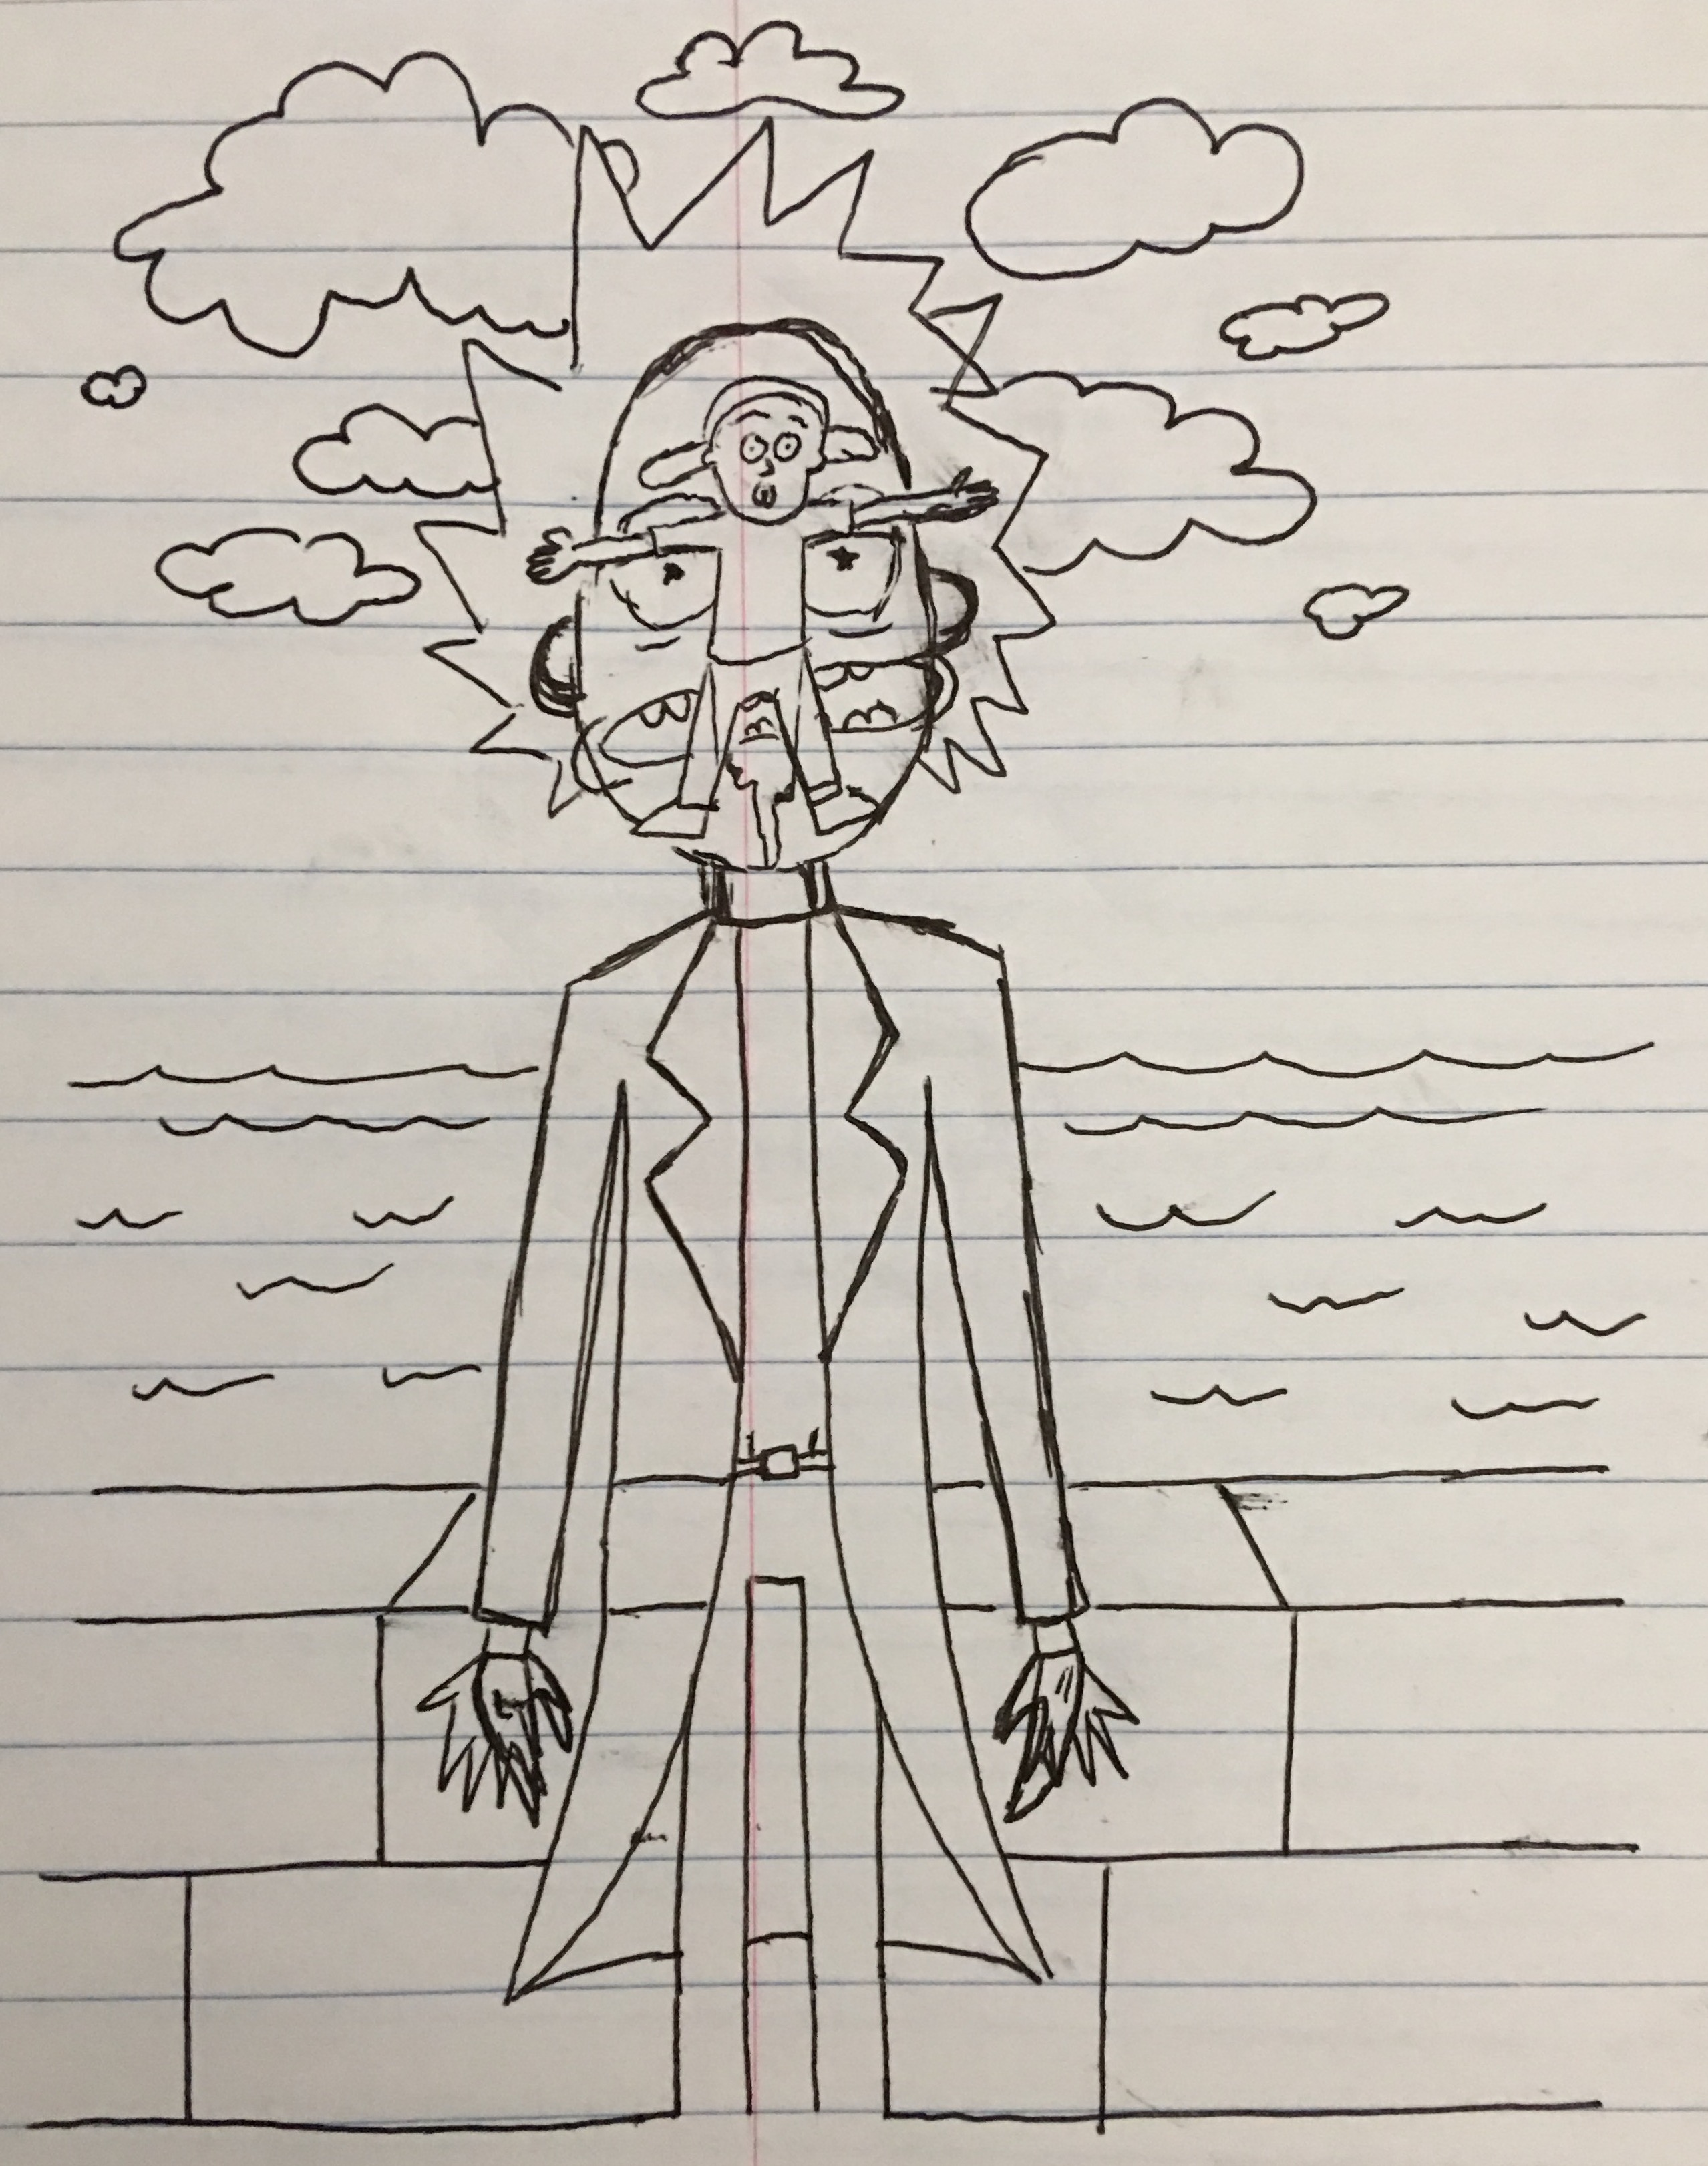 The Morty of Rick Sketch